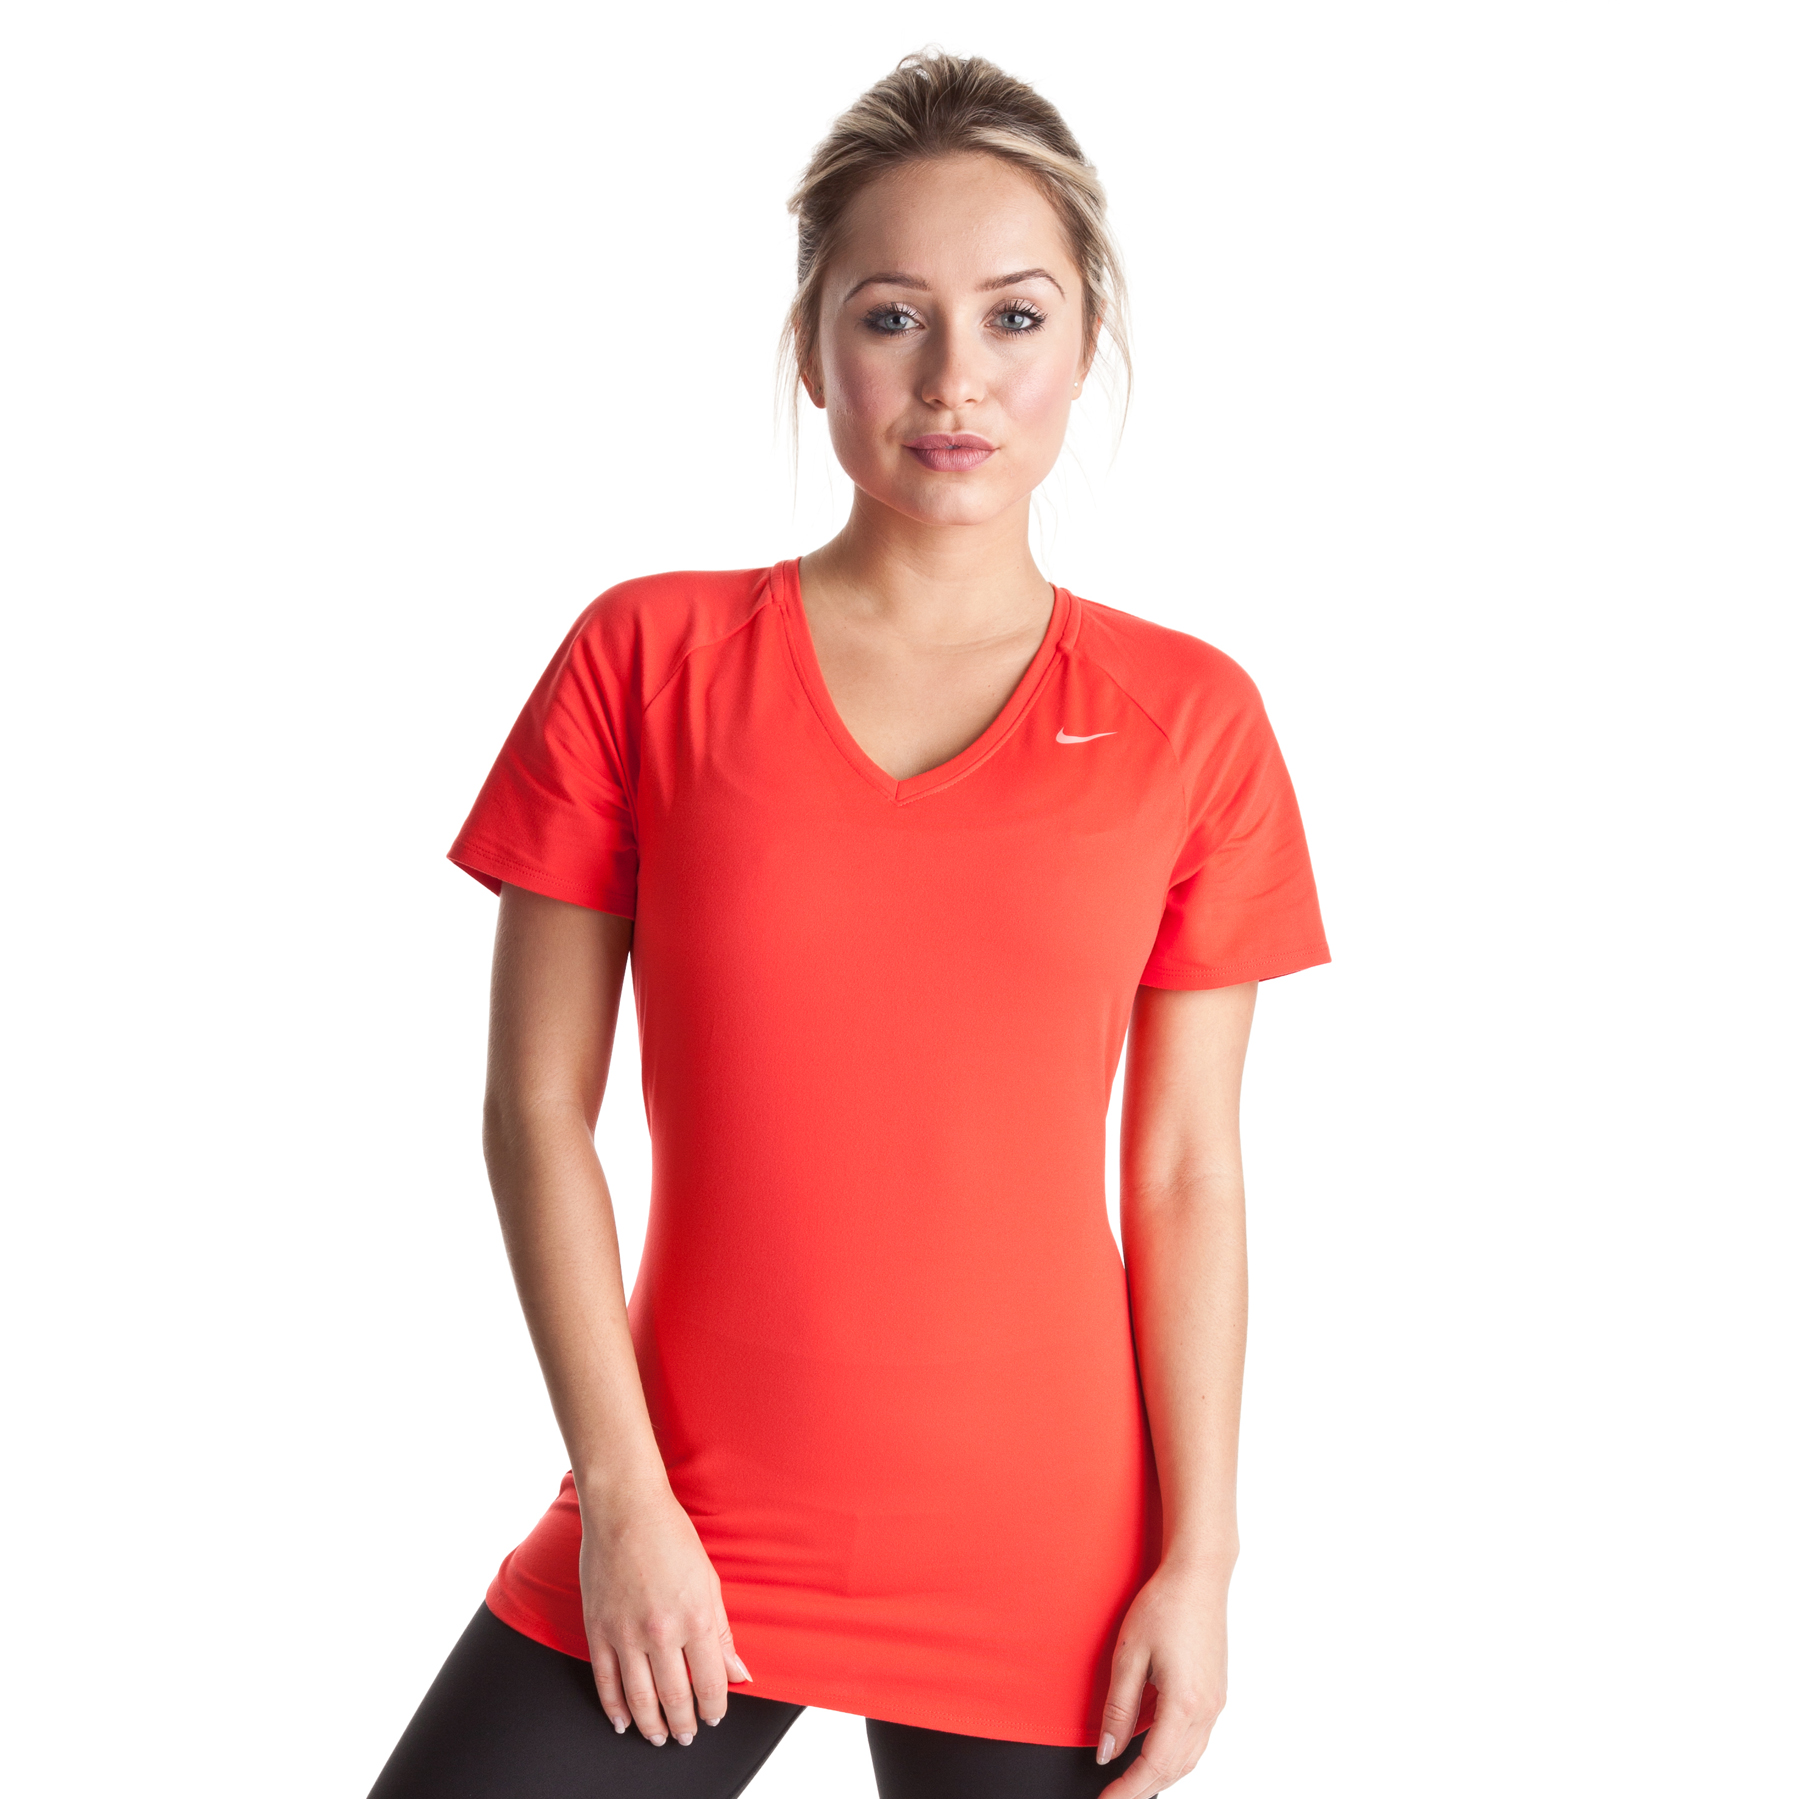 Nike Regular Club Short Sleeve - Sunburst/Bright Peach - Womens